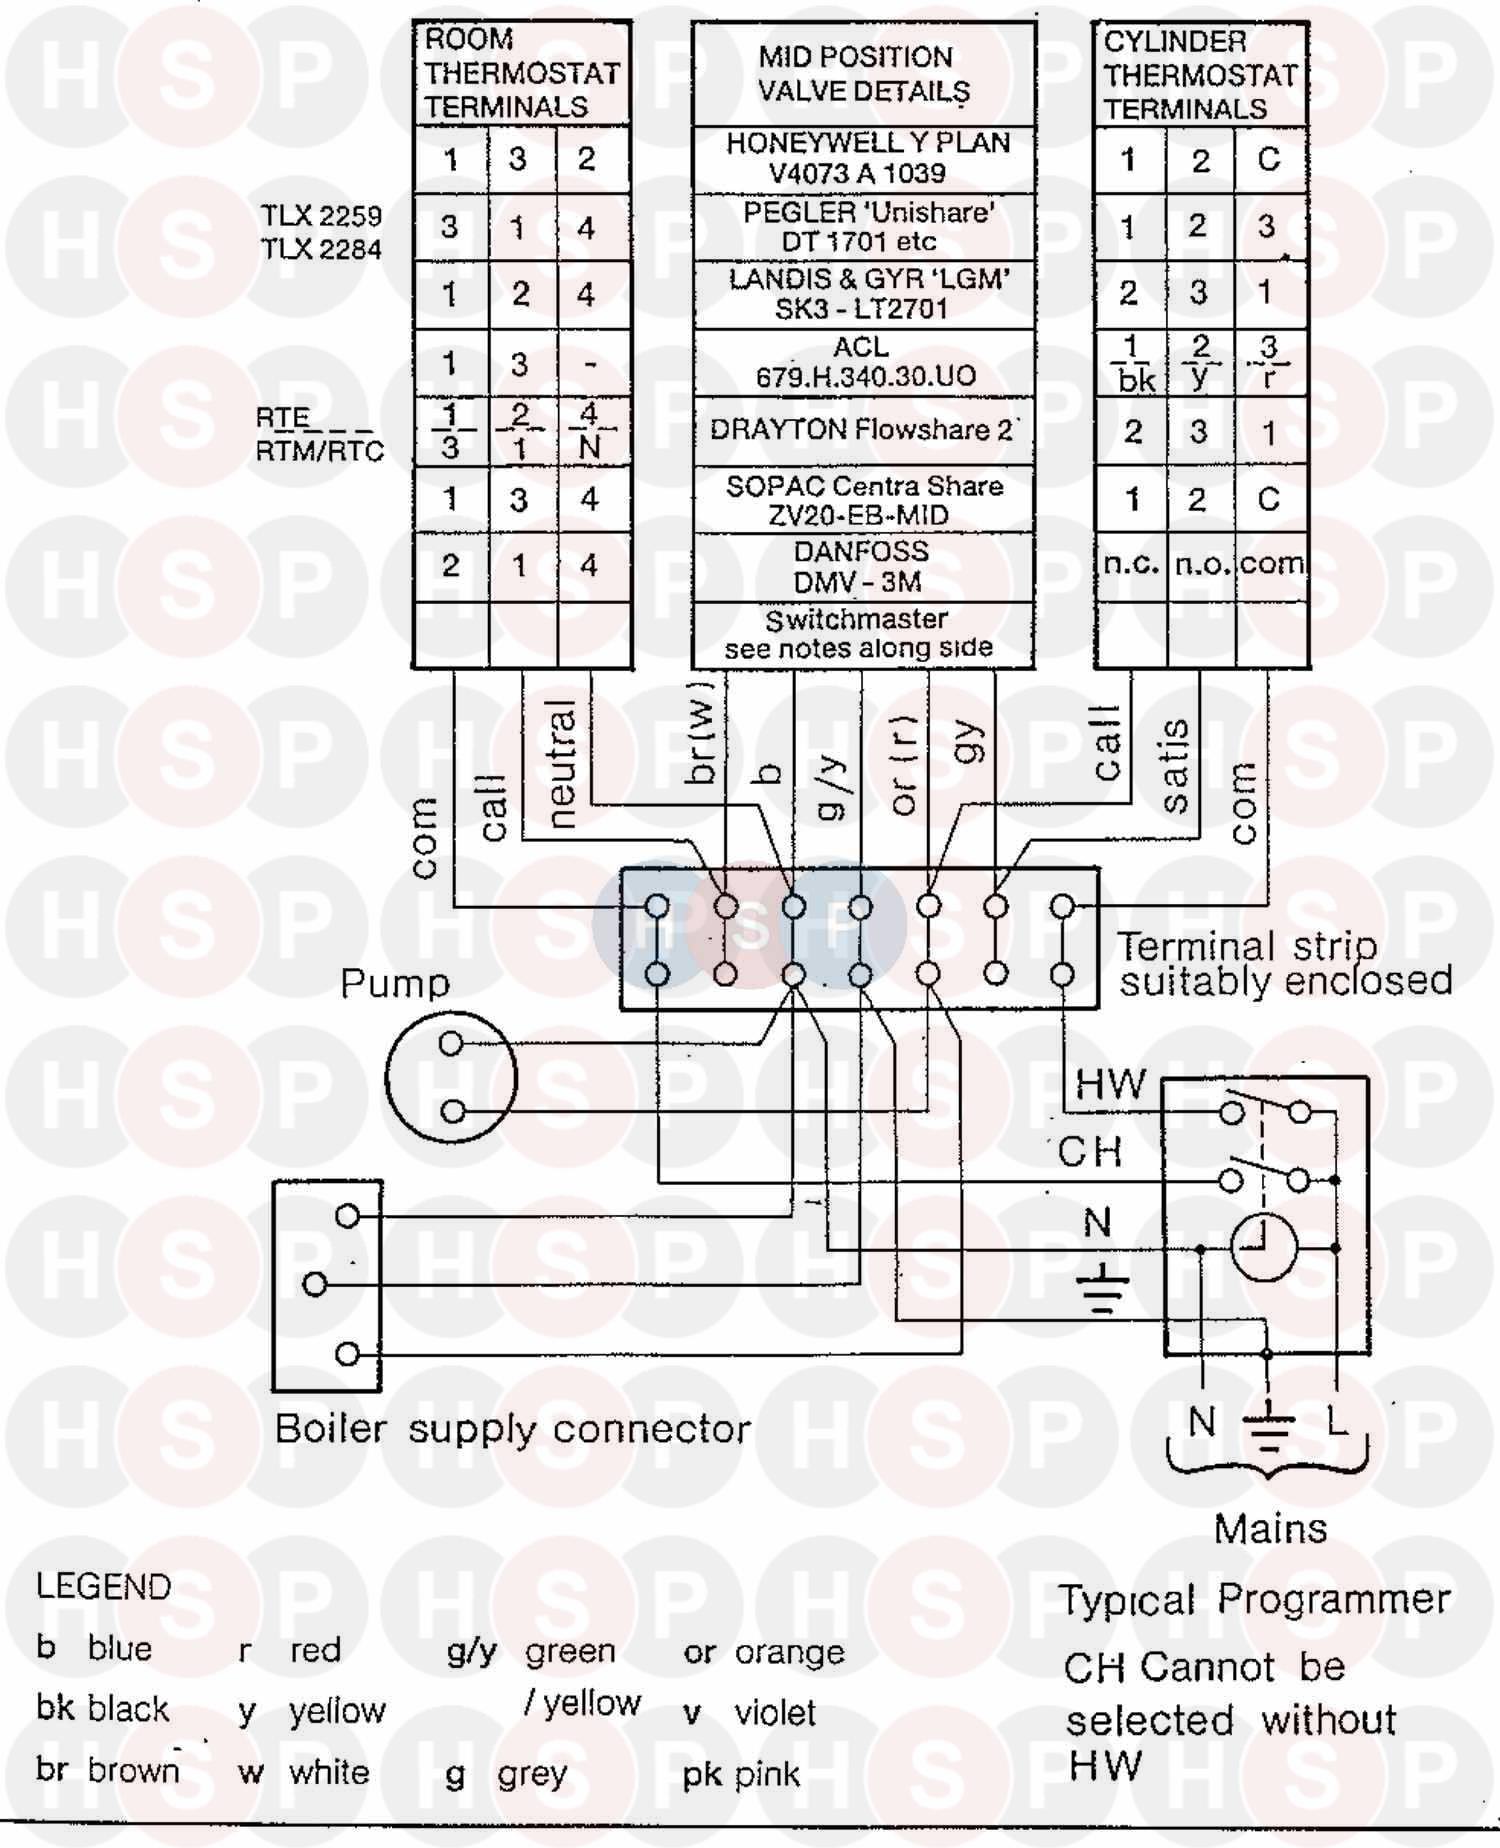 Ideal elan 2 nf 240 wiring diagram 2 diagram heating spare parts click the diagram to open it on a new page cheapraybanclubmaster Images